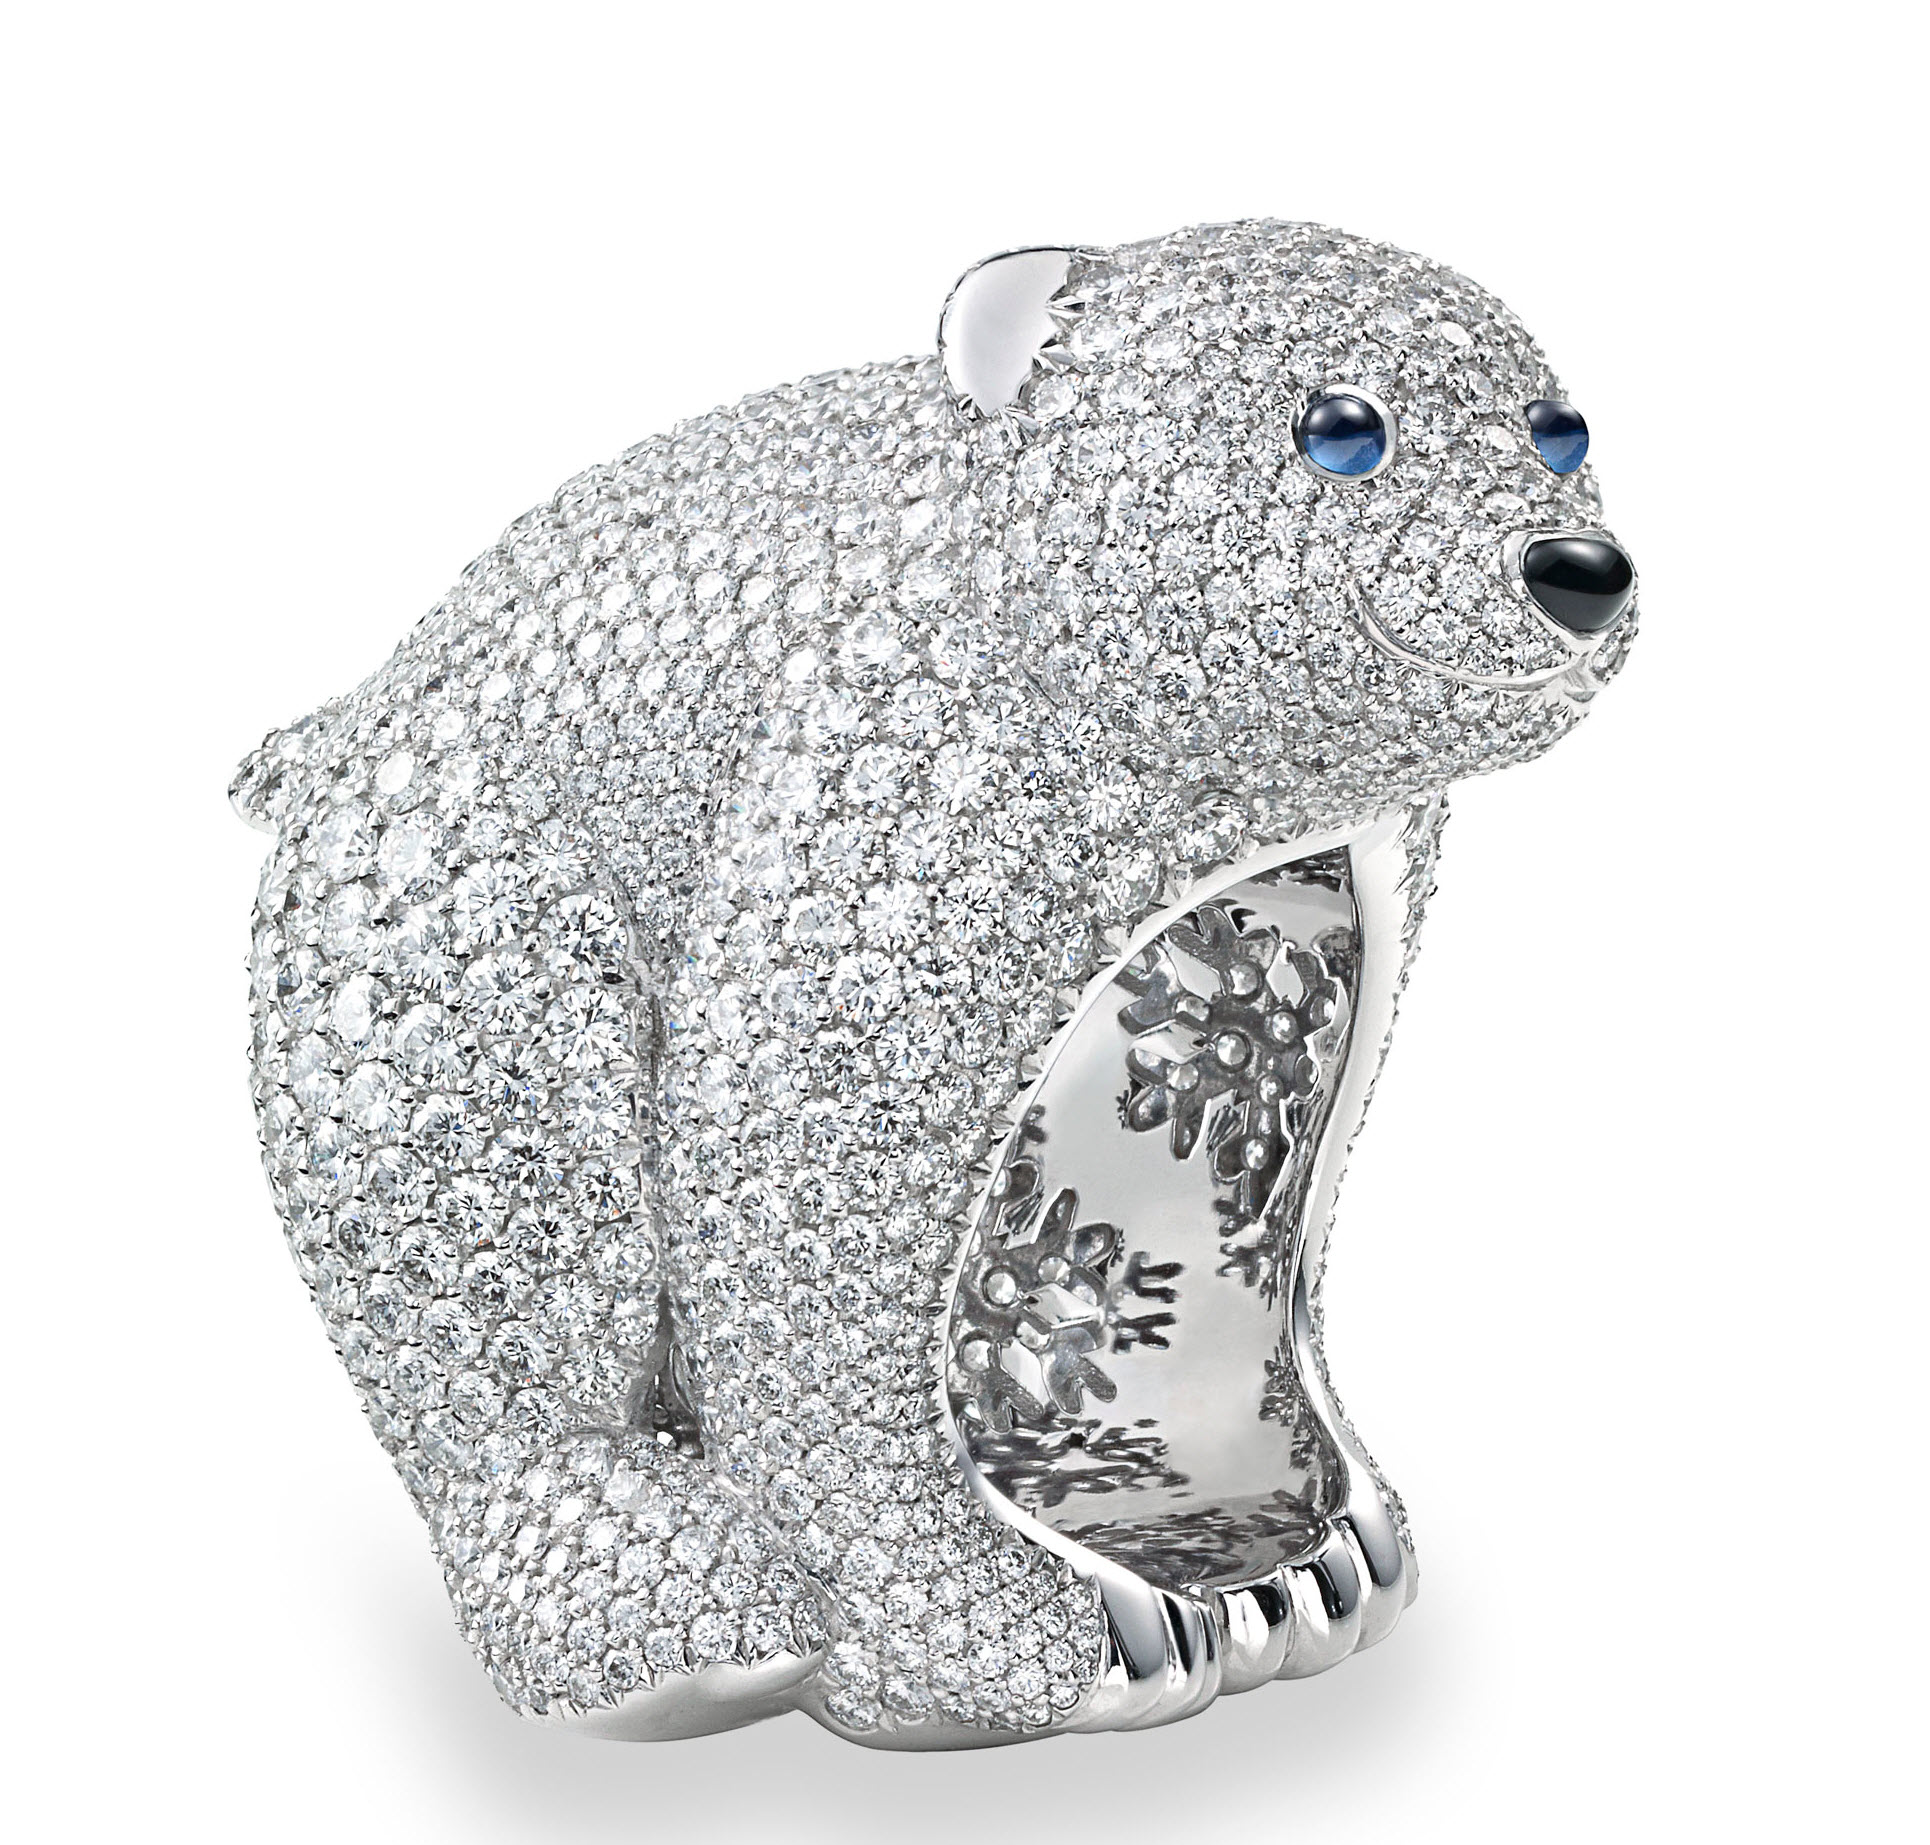 cold rings bear jewelry comforts spade new cocktail diamond ring york products enlarged polar kate